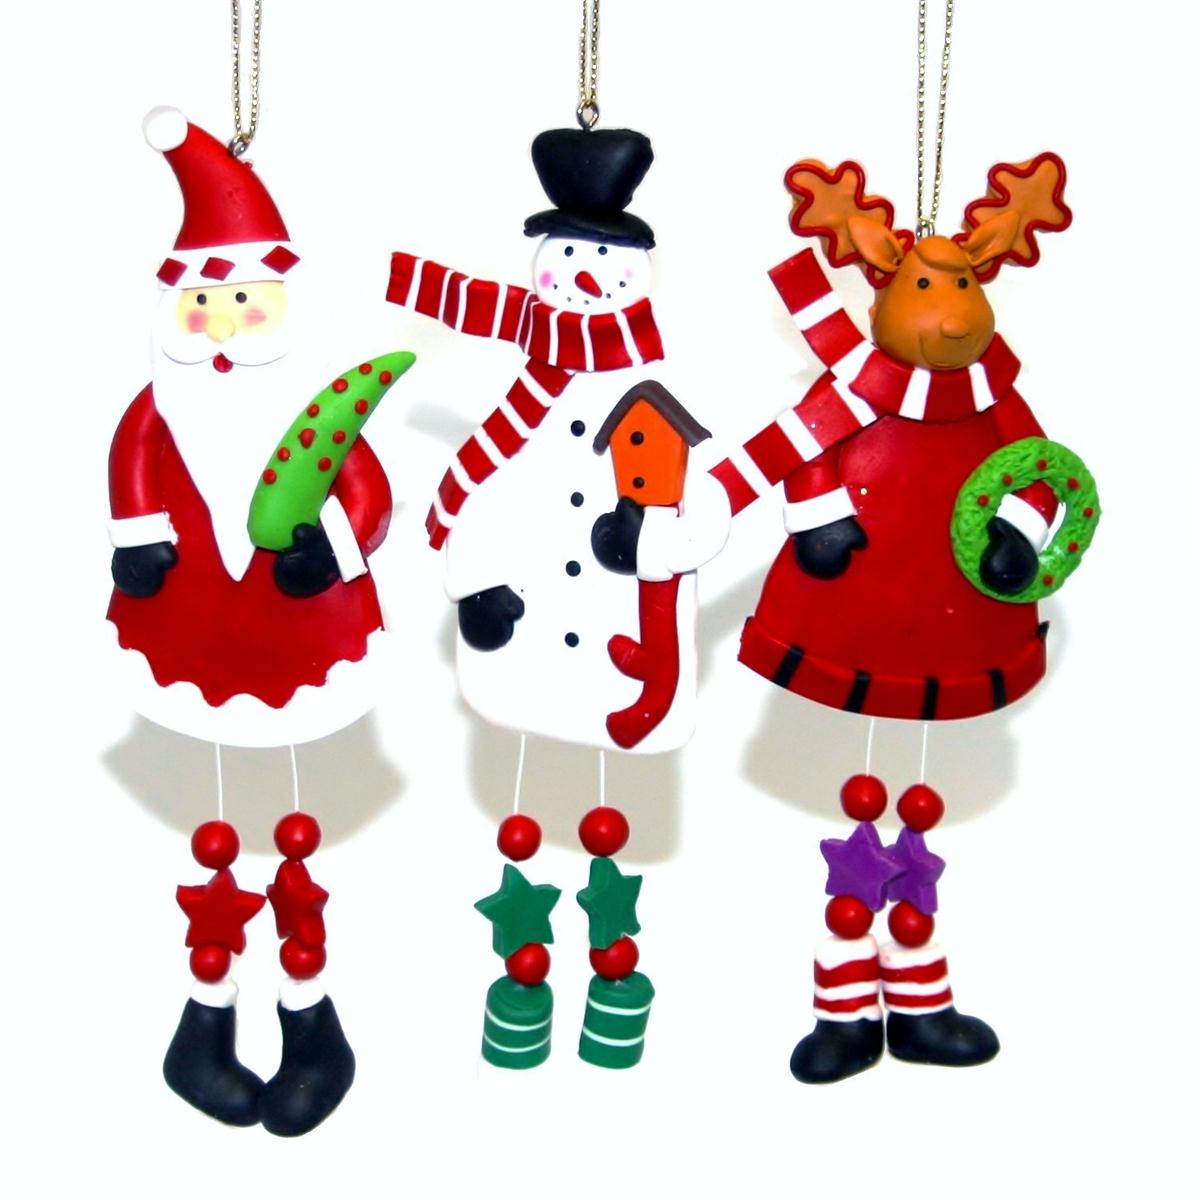 knobbly knees clay christmas tree ornaments handmade xmas decorations set of 3